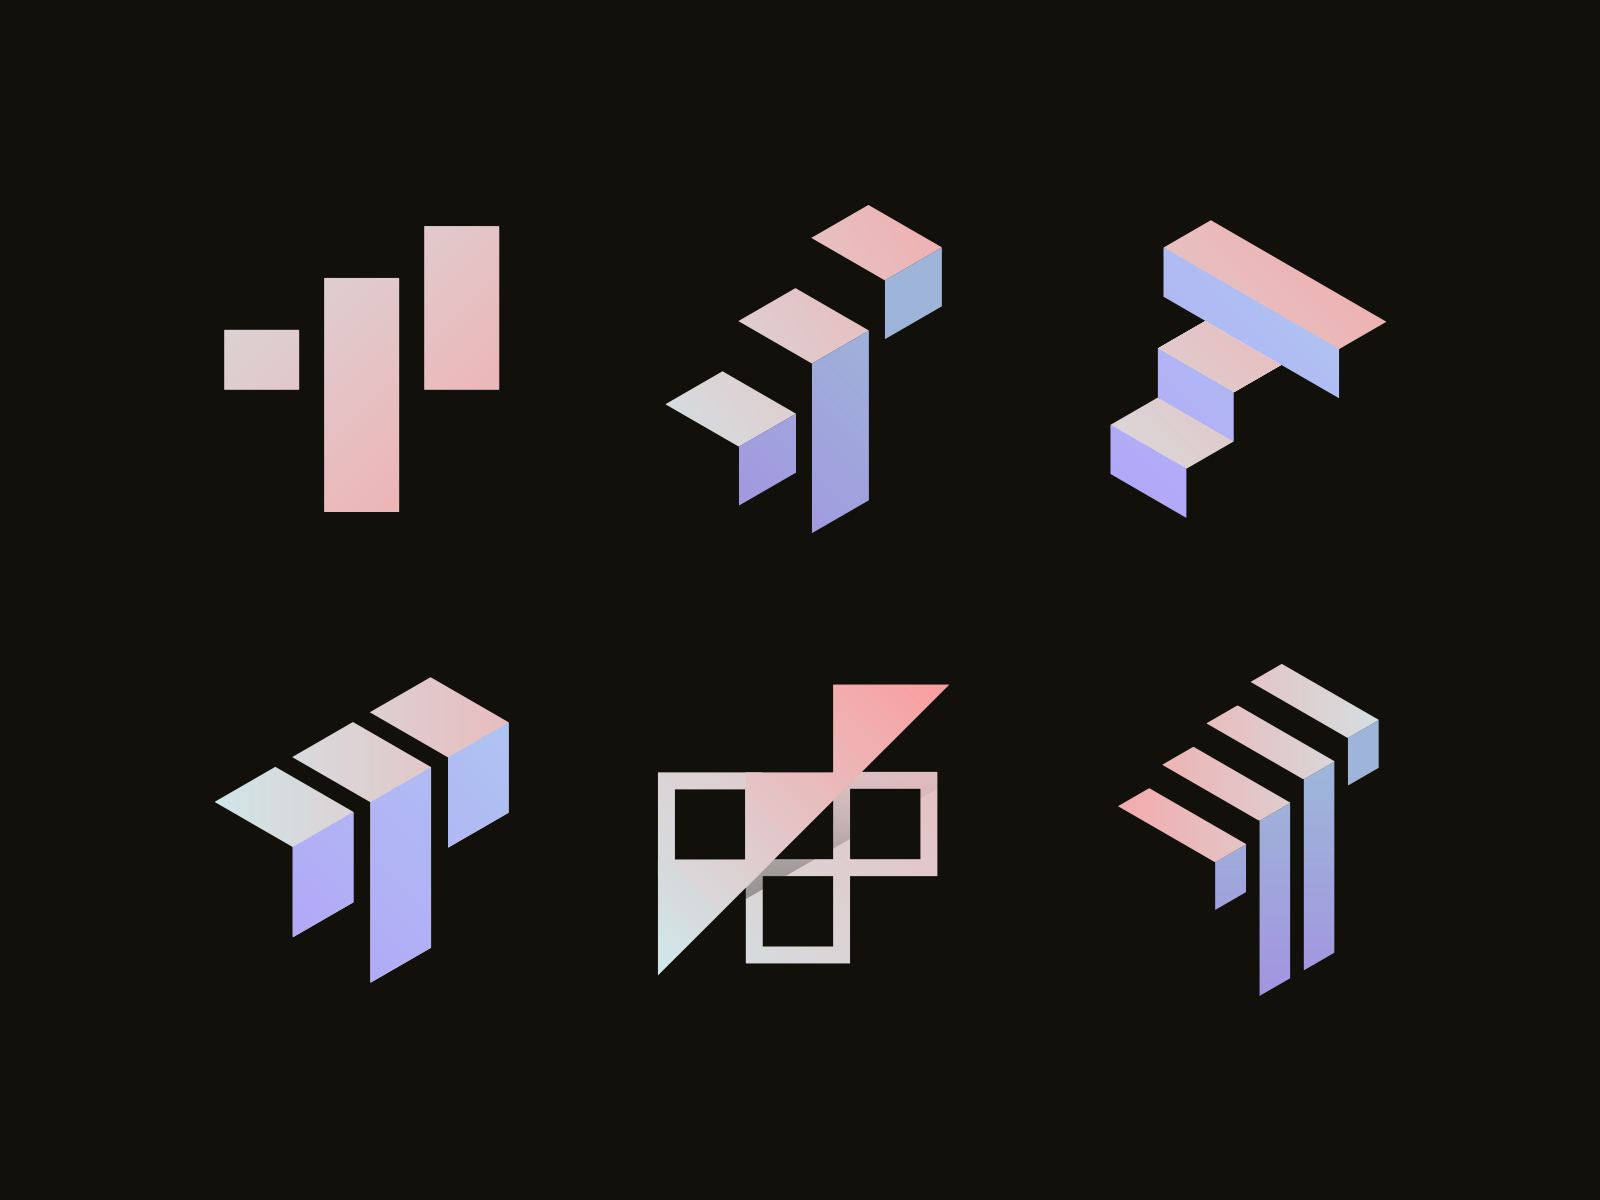 T, Stairs, Success, Up Logo Concepts